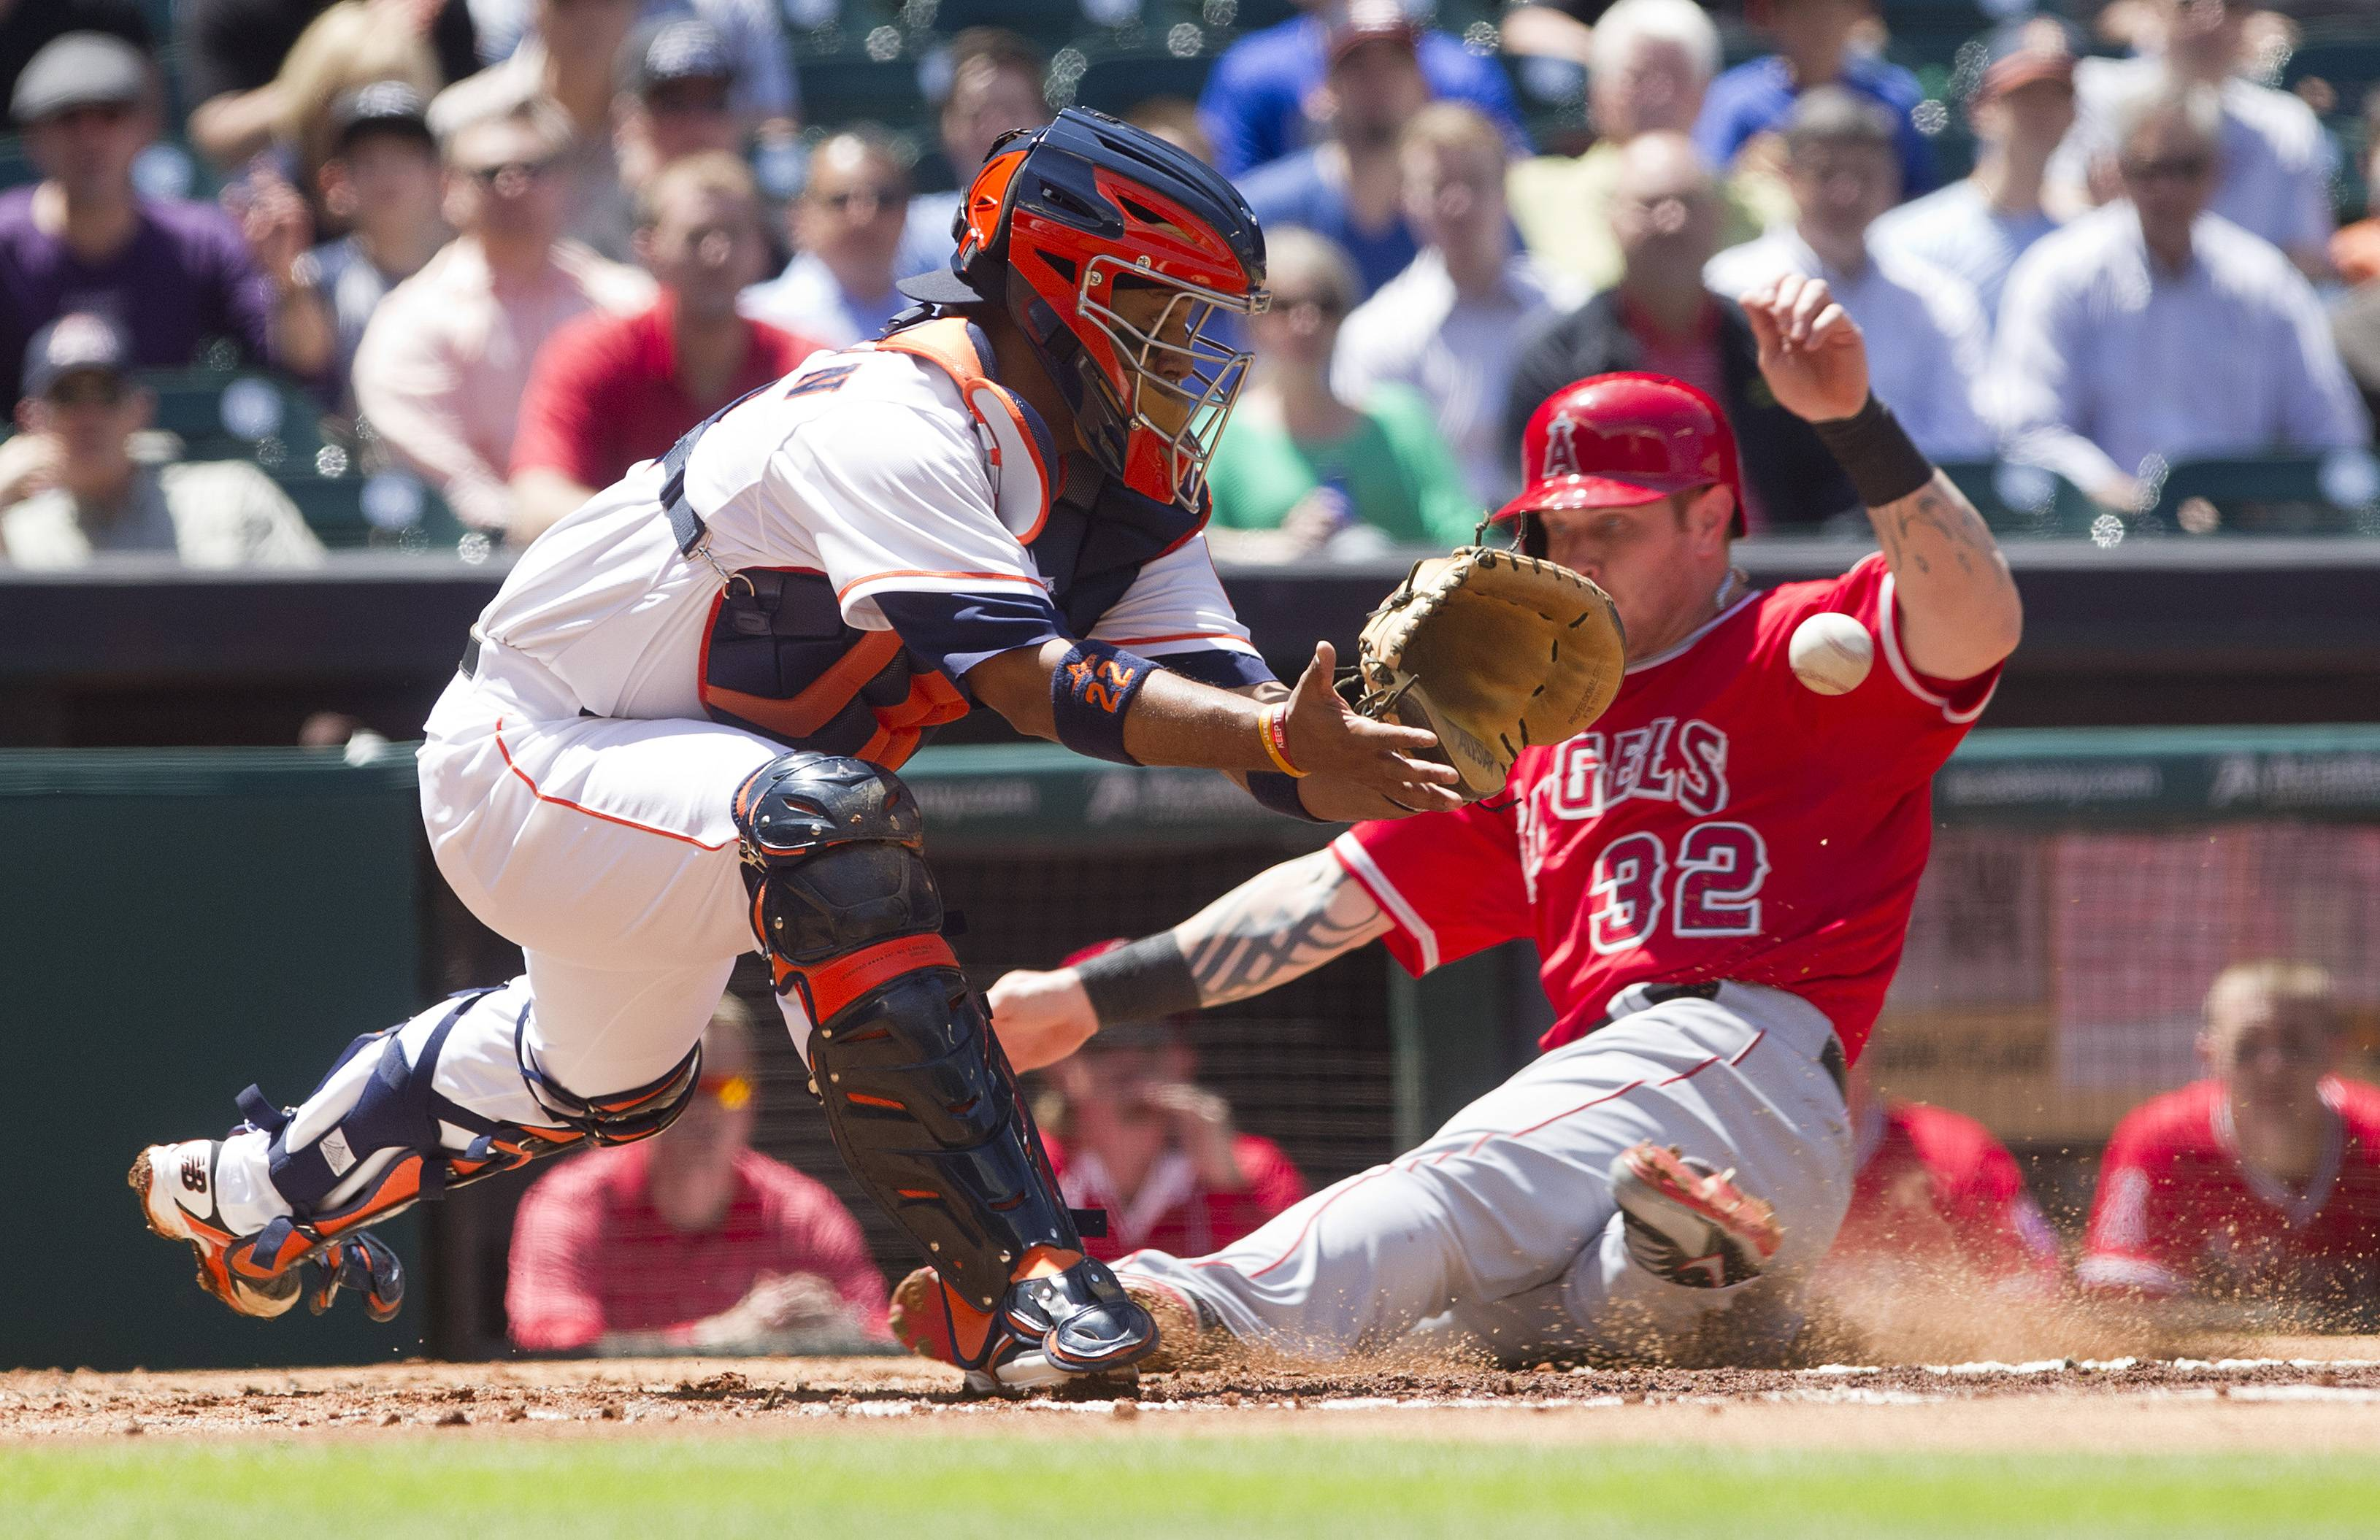 Los Angeles Angels' Josh Hamilton (32) beats the throw to Houston Astros catcher Carlos Corporan (22) for score during the first inning during a MLB America League baseball game Monday, April 7, 2014, in Houston. The Los Angeles Angels defeated the Houston Astros 9-1. (AP Photo/ The Courier, Jason Fochtman)